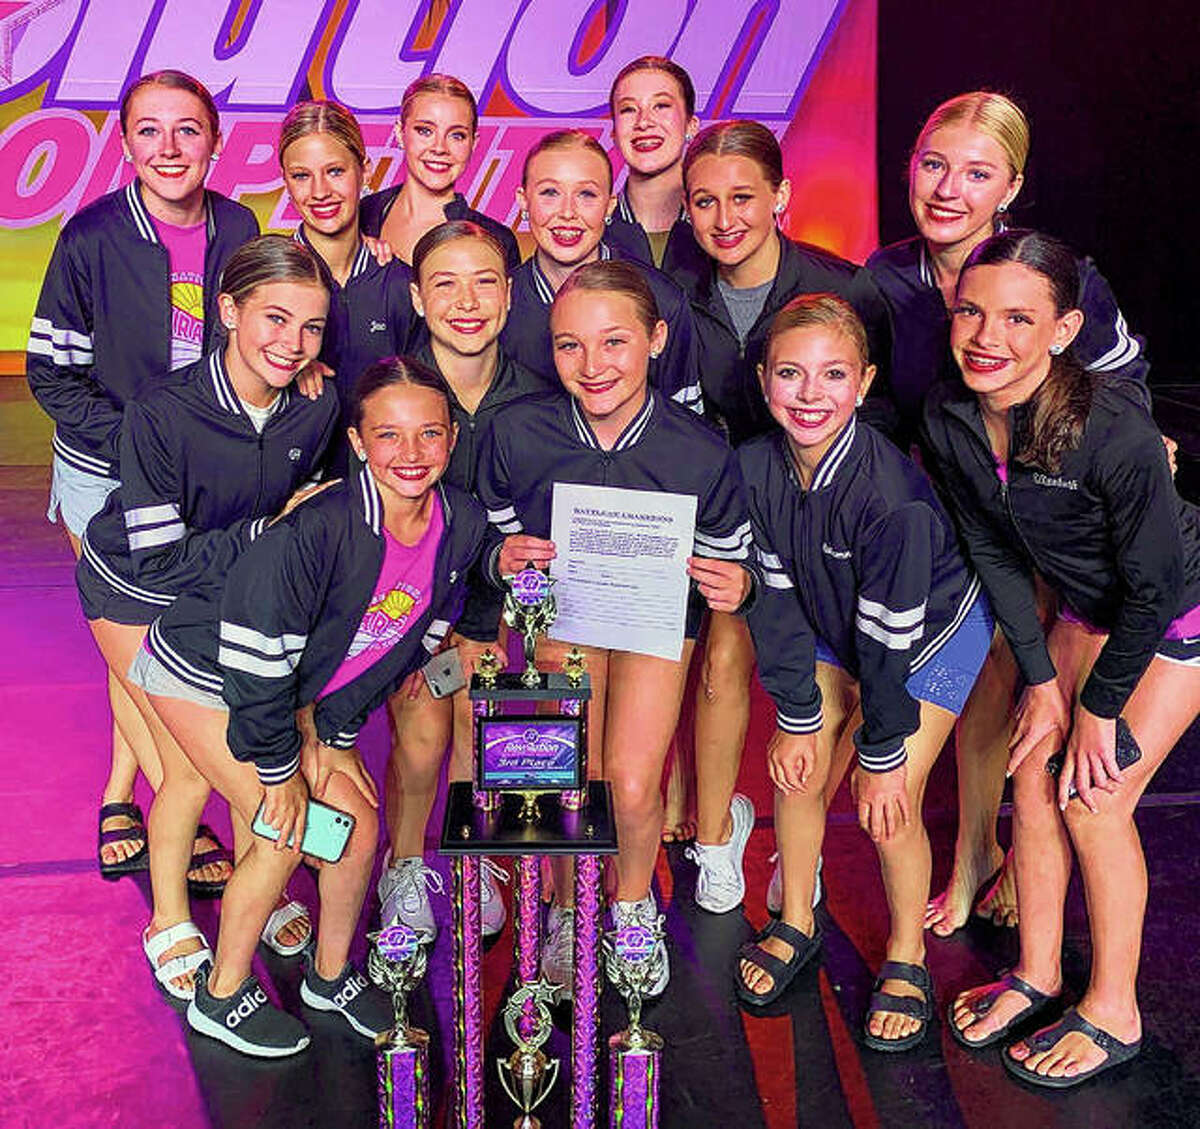 """Students of Sara's Studio of Dance recently attended Revolution Nationals, competing against dancers from some of the top studios in the United States. Sara's teams won 14 Revolutionary Awards, meaning the teams or soloists scored at least 295 points out of a possible 300. They also won 22 platinum awards, 10 Elite Gold awards, one first-place award, four second-place awards and three third-place awards. They had five """"Battle finalists"""" and dancer Jaycee Bates earned a first-runner-up title."""